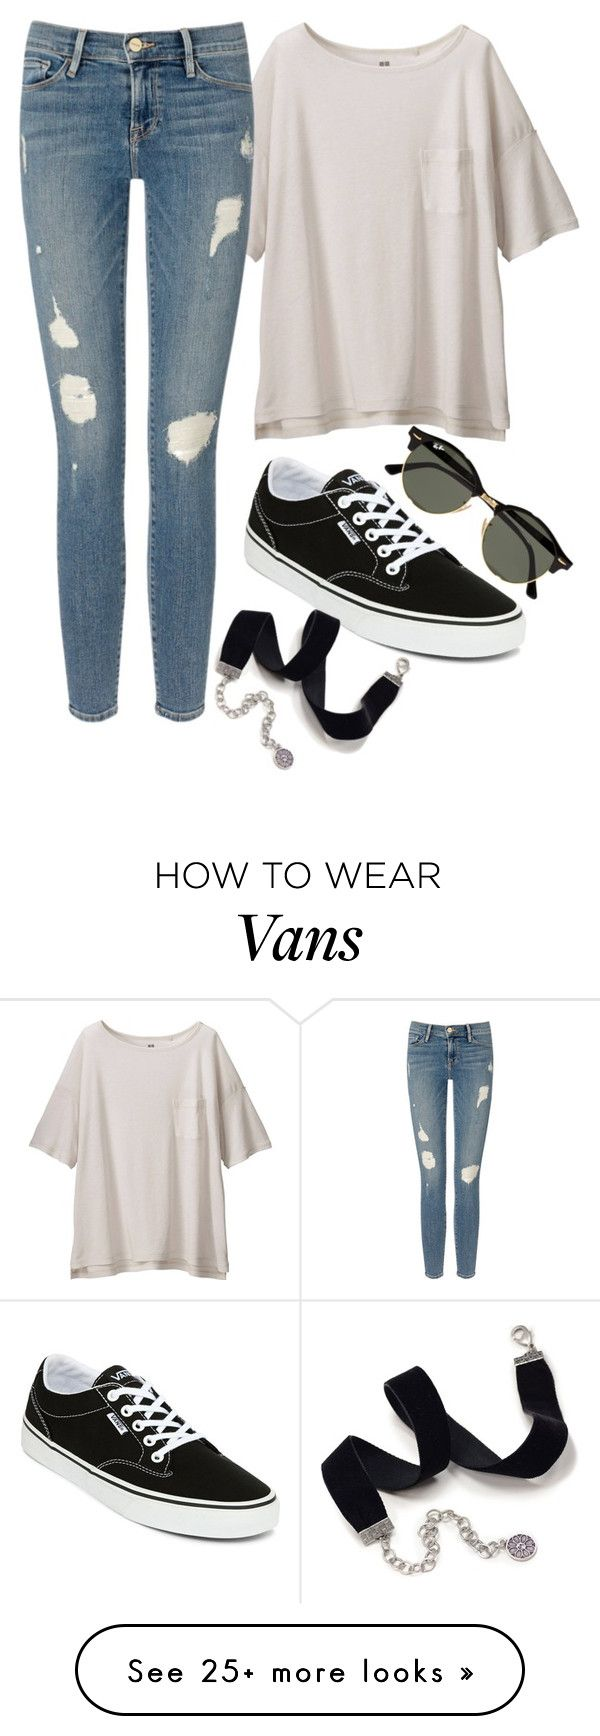 """BACK TO SCHOOL 1 day outfit"" by fashion-is-passion23 on Polyvore featuring Uniqlo, Frame Denim, Vans, Ray-Ban and Sweet Romance"